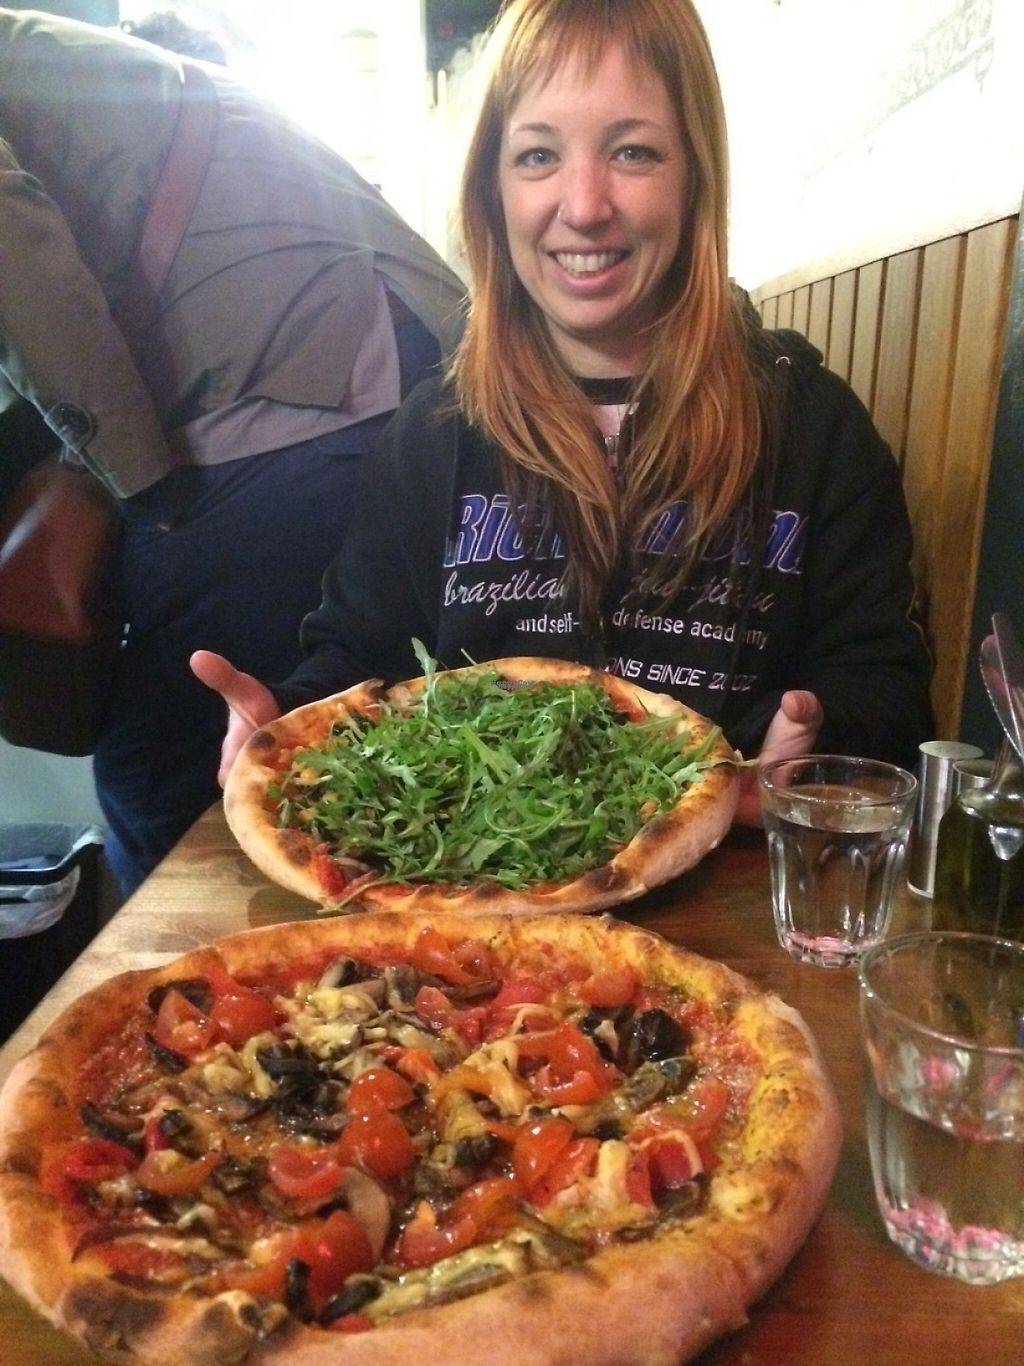 """Photo of Aperitivo  by <a href=""""/members/profile/NikkiStitch"""">NikkiStitch</a> <br/>2 vegan pizzas <br/> April 27, 2017  - <a href='/contact/abuse/image/84146/252928'>Report</a>"""